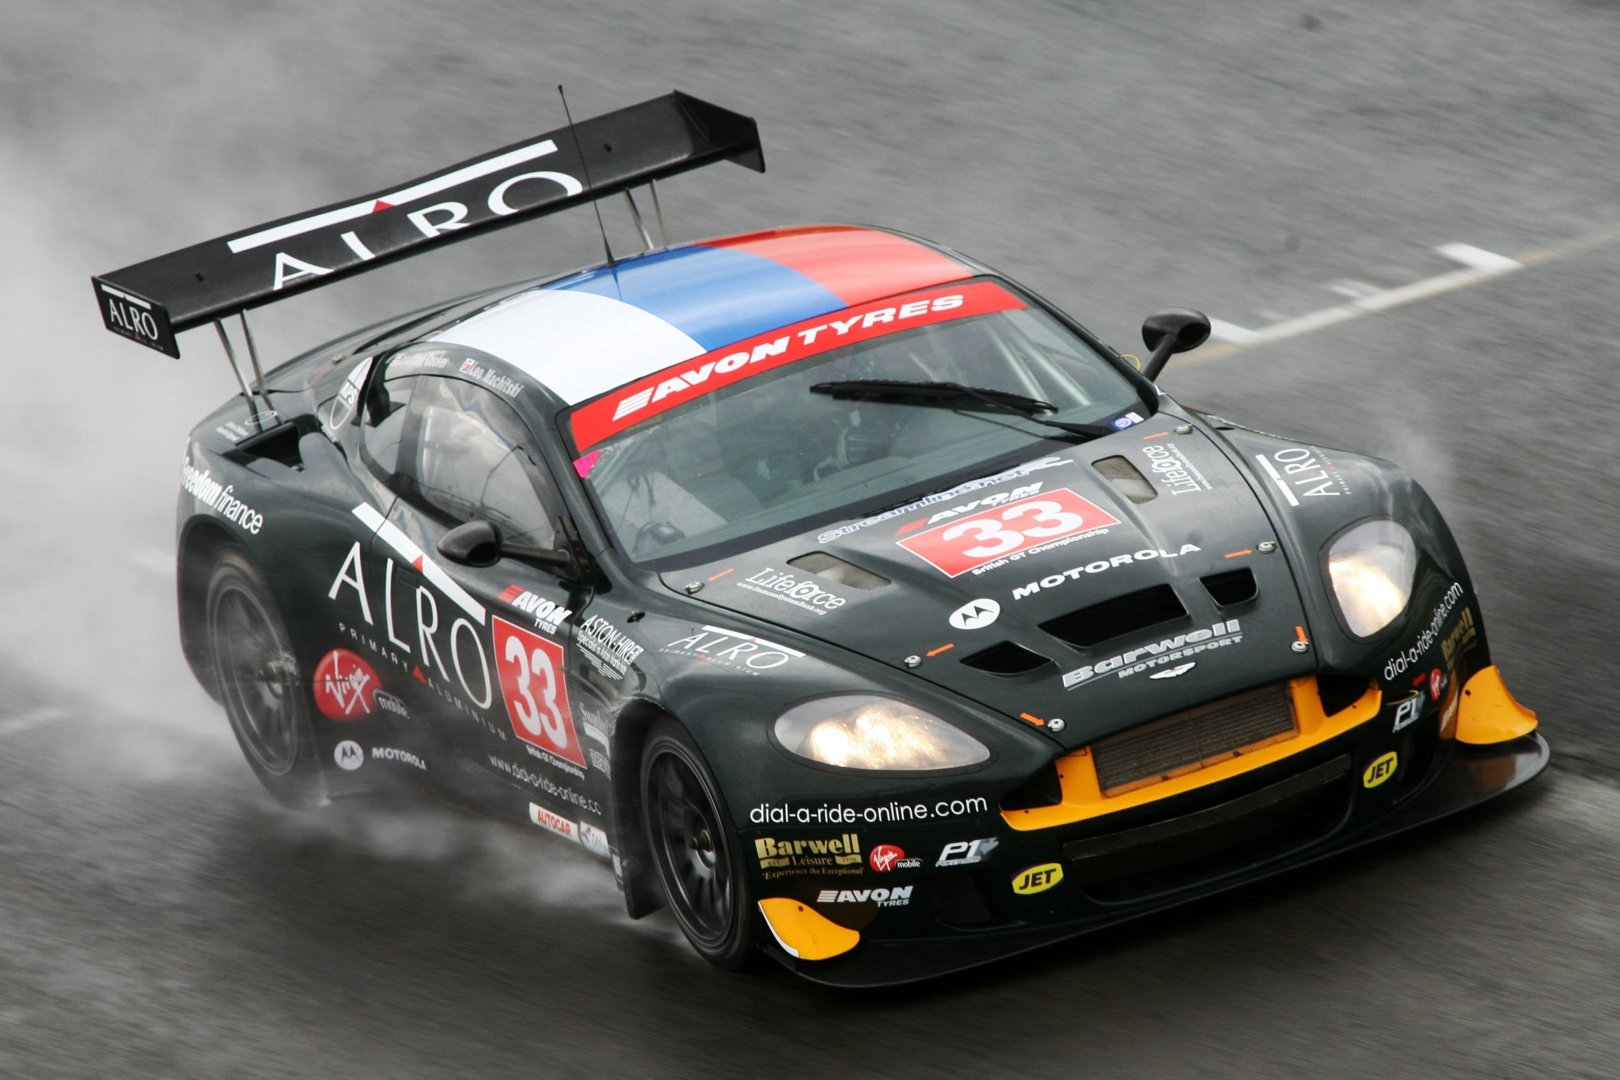 The Time Aston Martin Threw A Tracksuit On The Db9